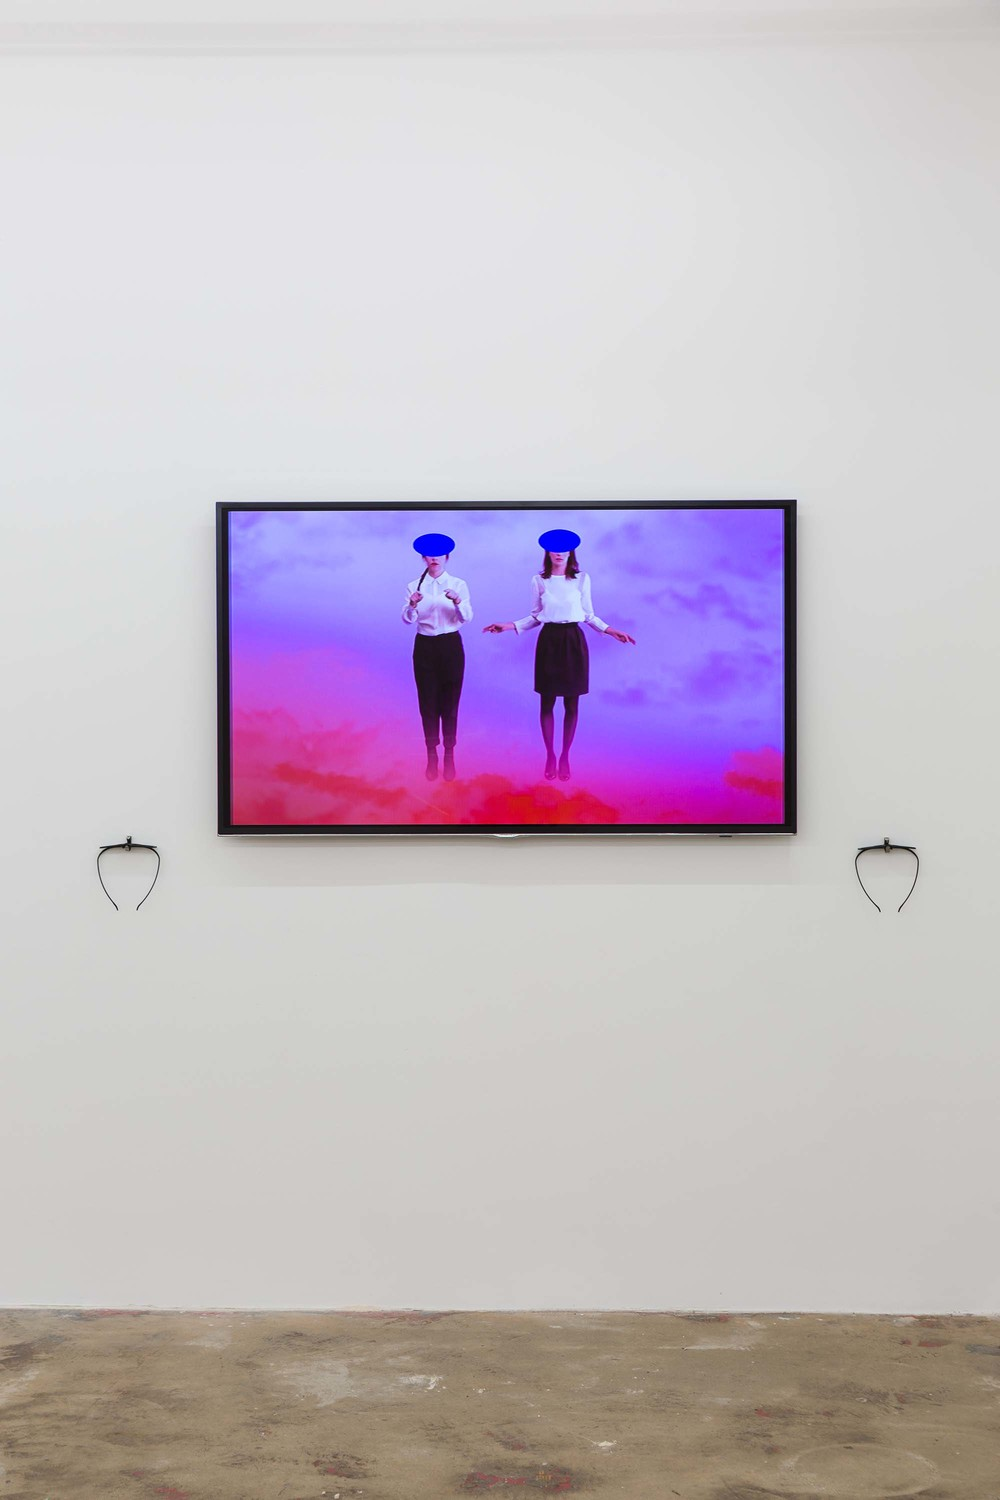 Cecile B. Evans, The Brightness, 2013, installation view with 3D glasses